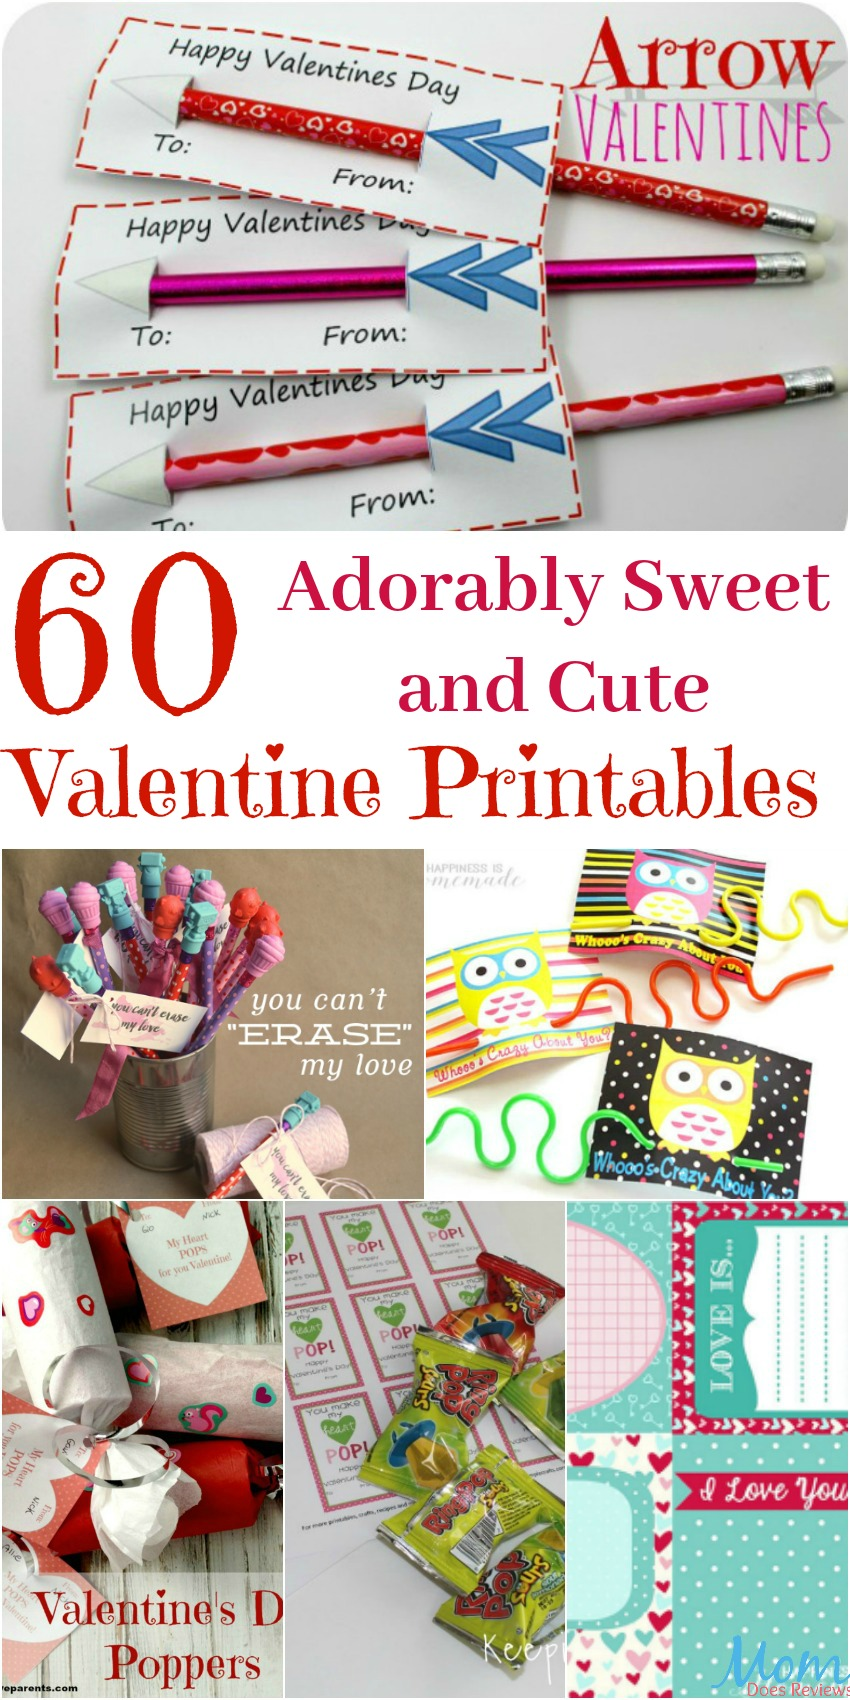 60 Adorably Sweet and Cute Valentine Printables banner